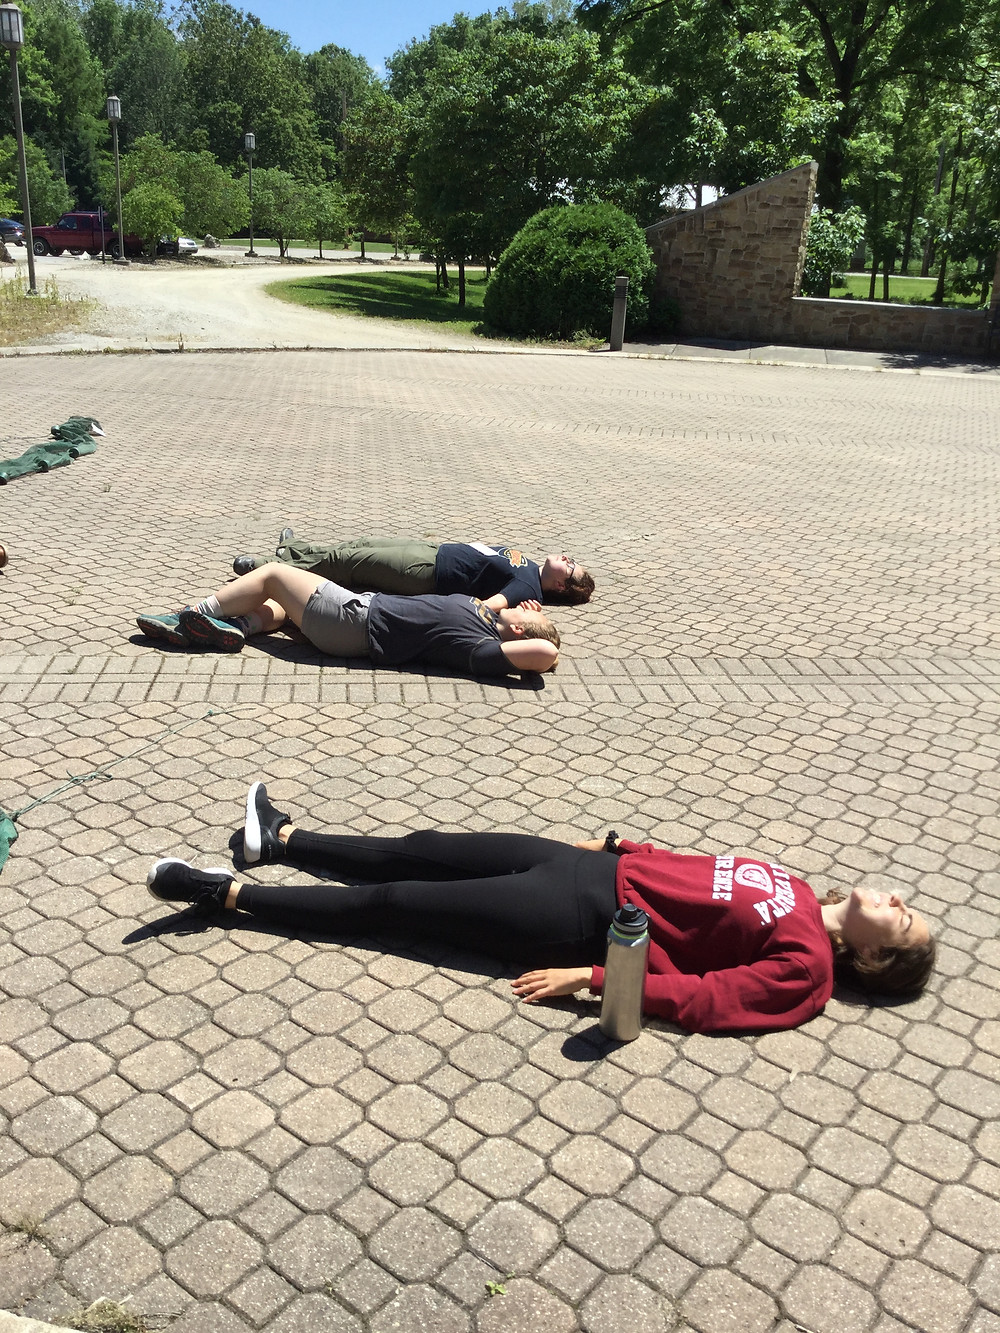 Jenny, Avery and Emily laying on the ground